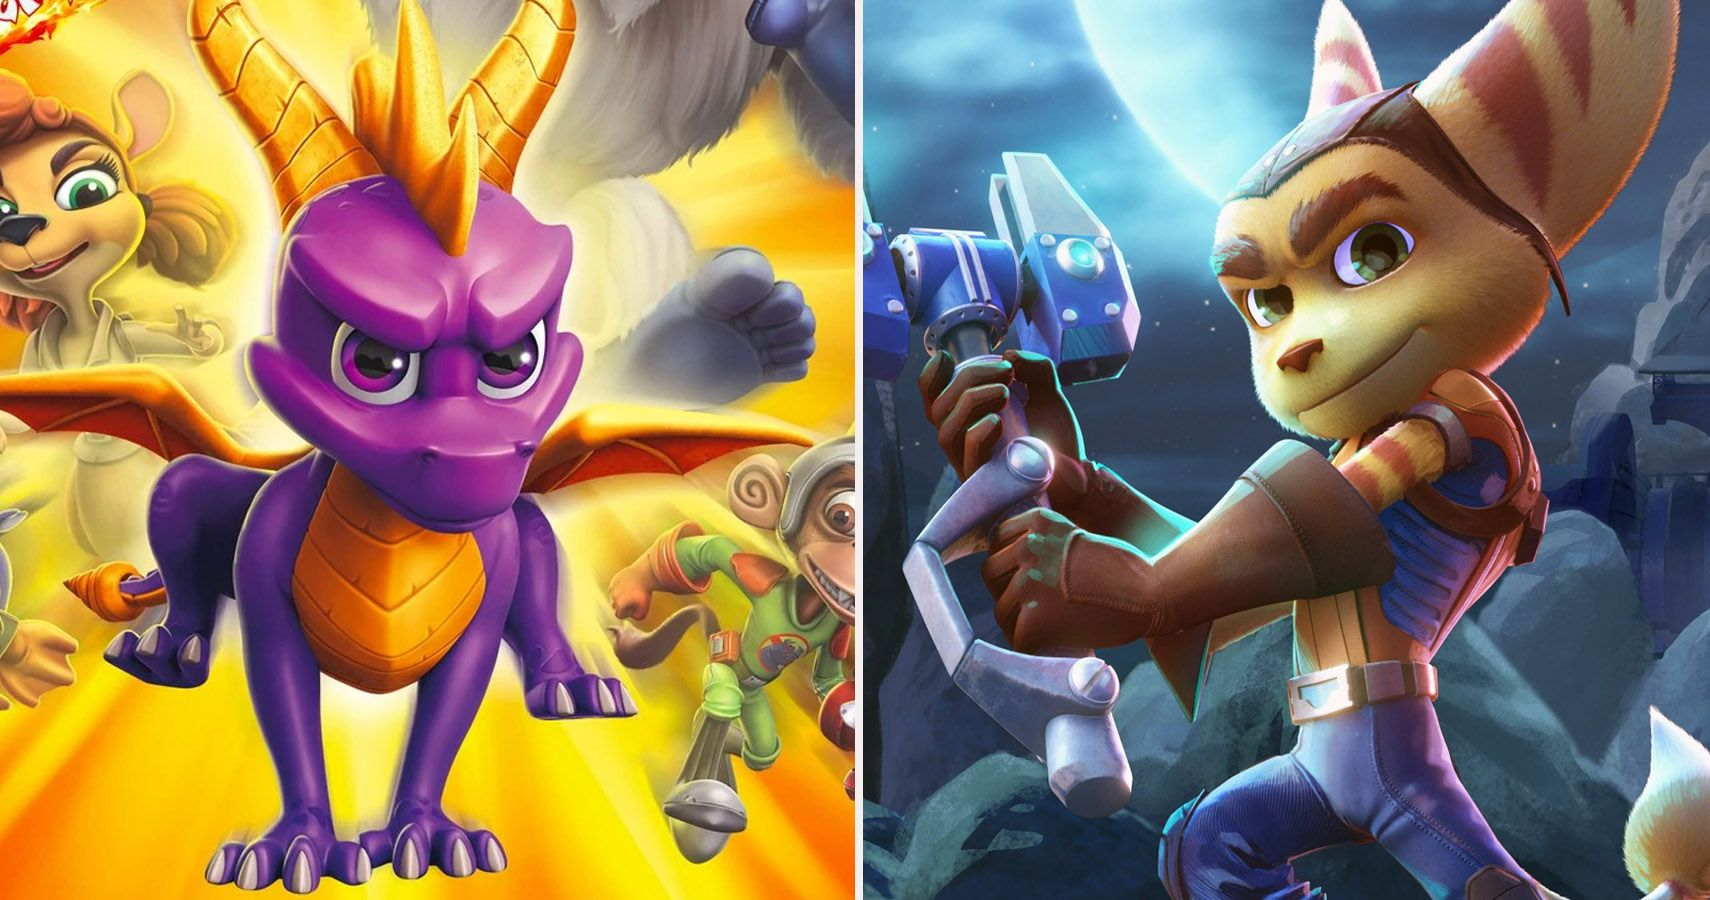 10 Best Insomniac Games Ranked According To Metacritic